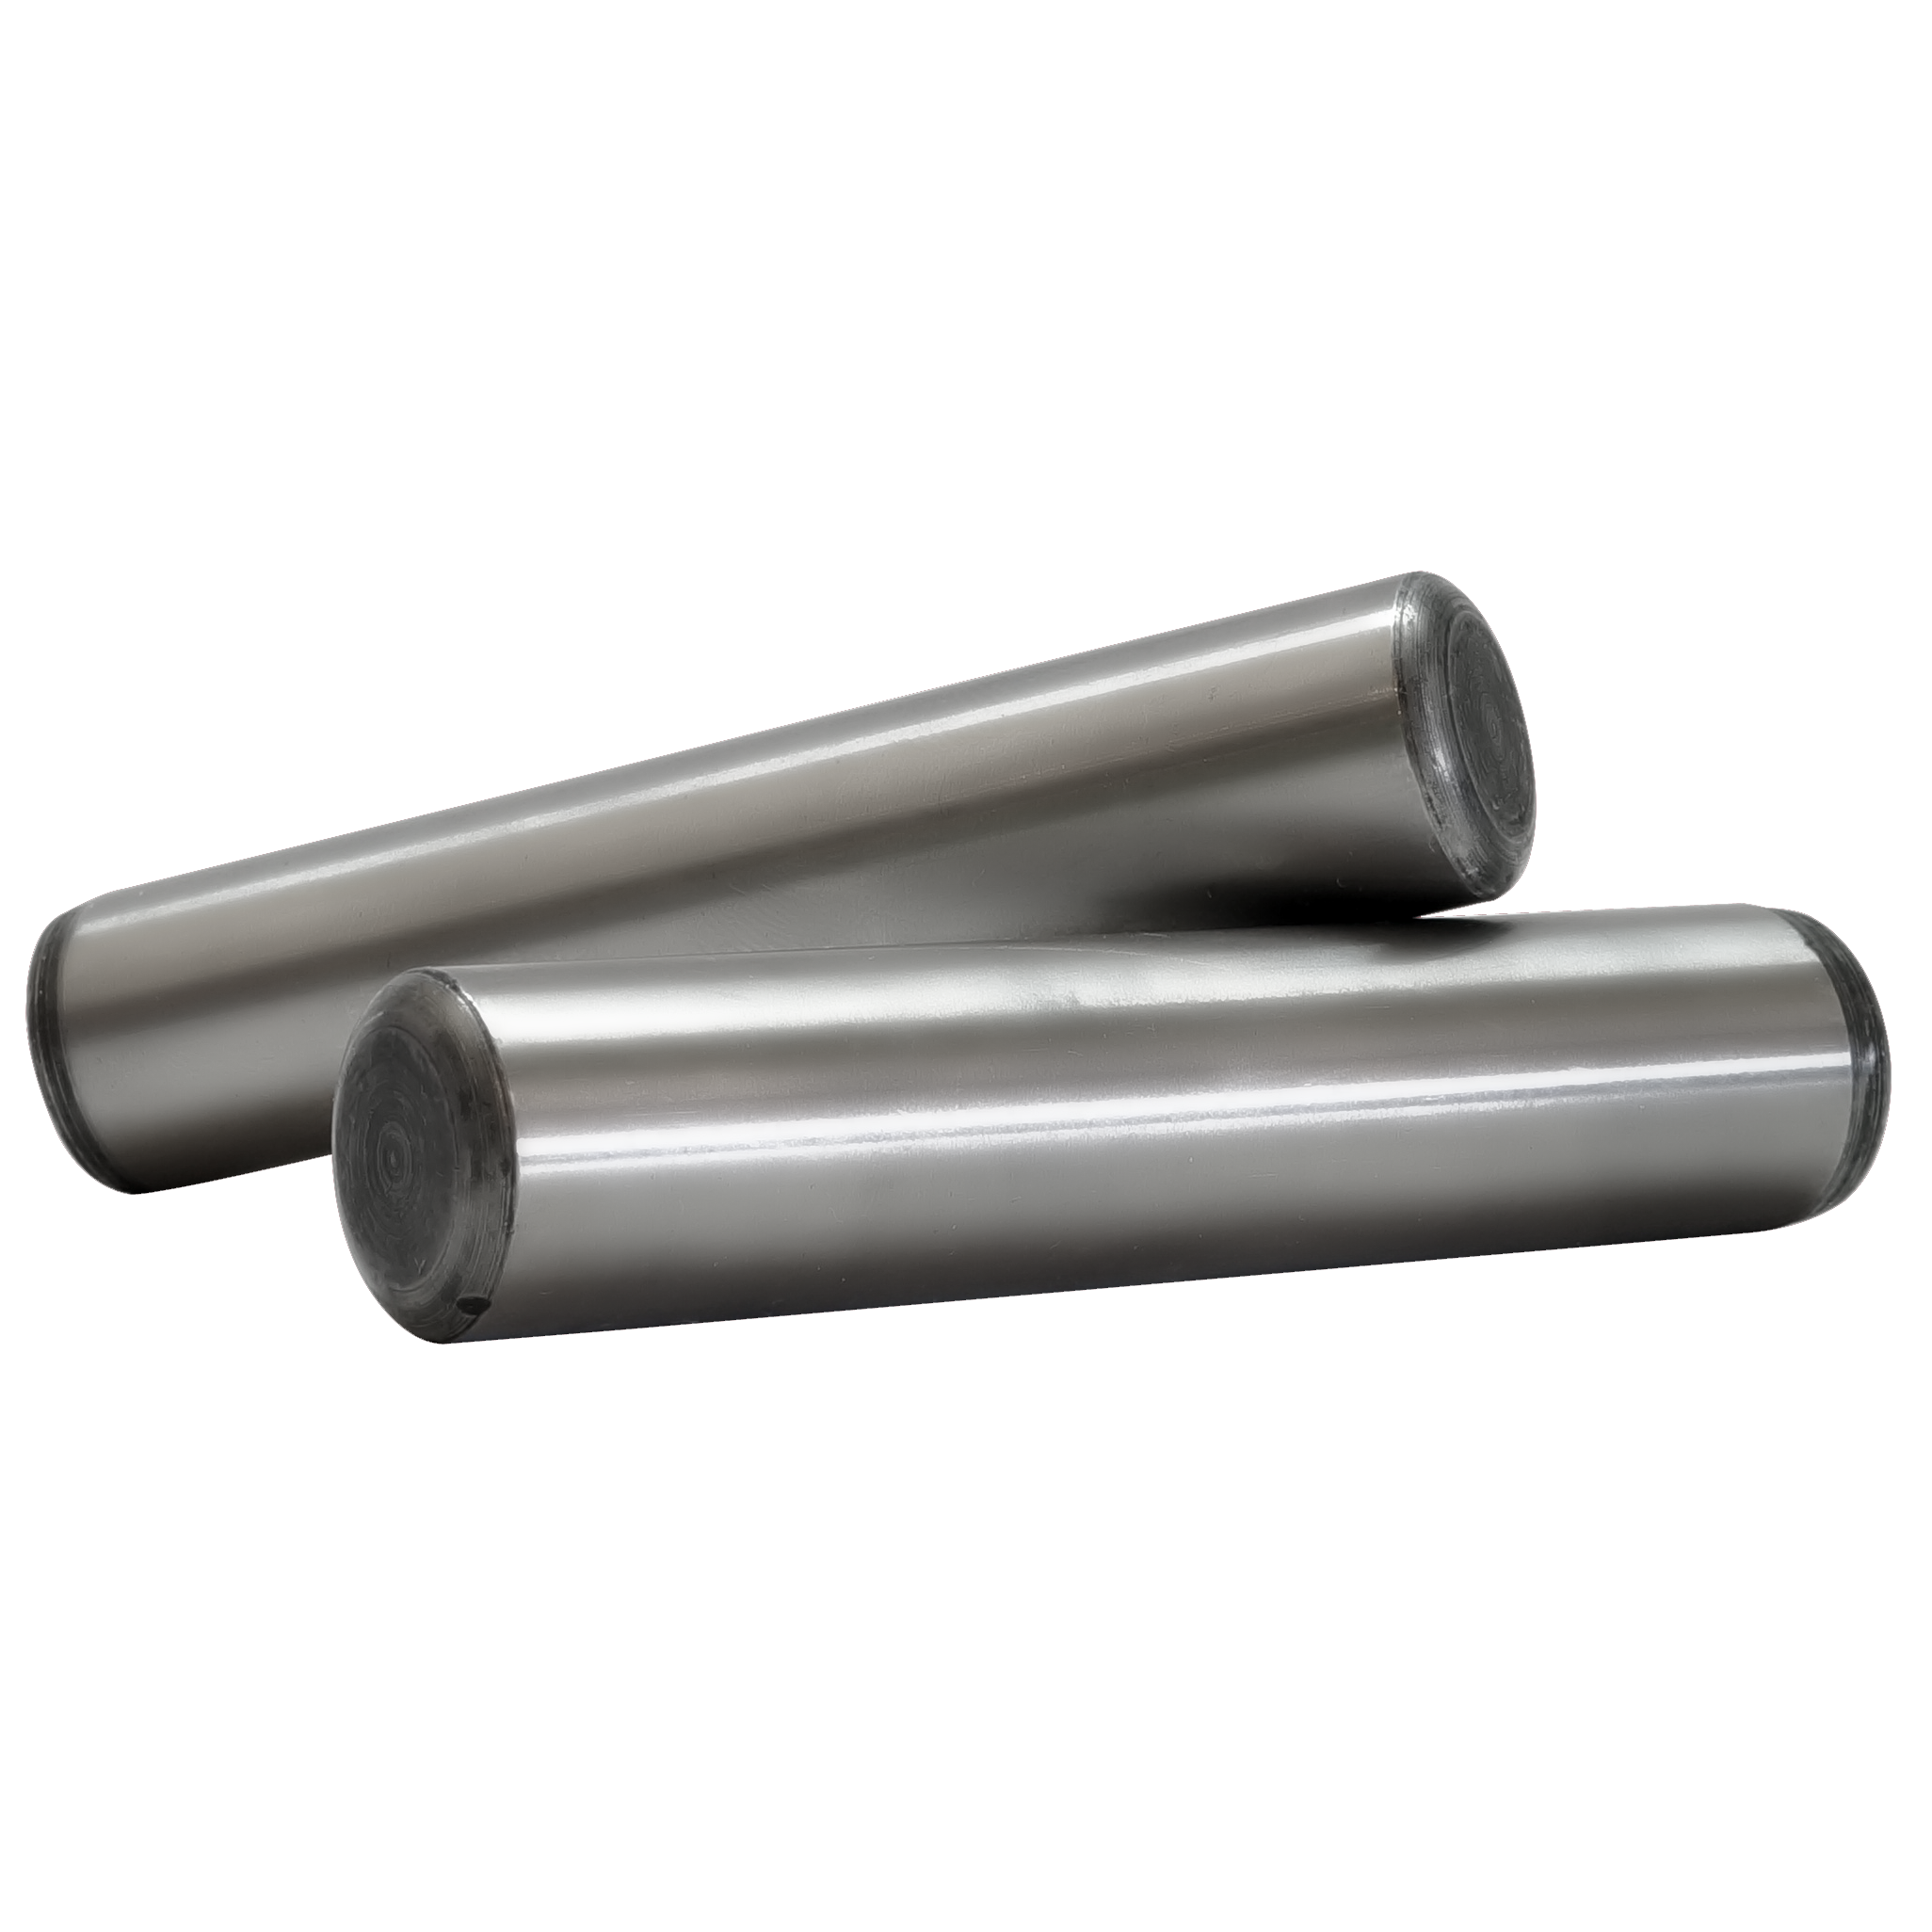 "1/8x1 ASME B18.8.2 Alloy Steel Dowel Pin Hardened Ground 0.0002"" Over Sized  (Unbrako)"